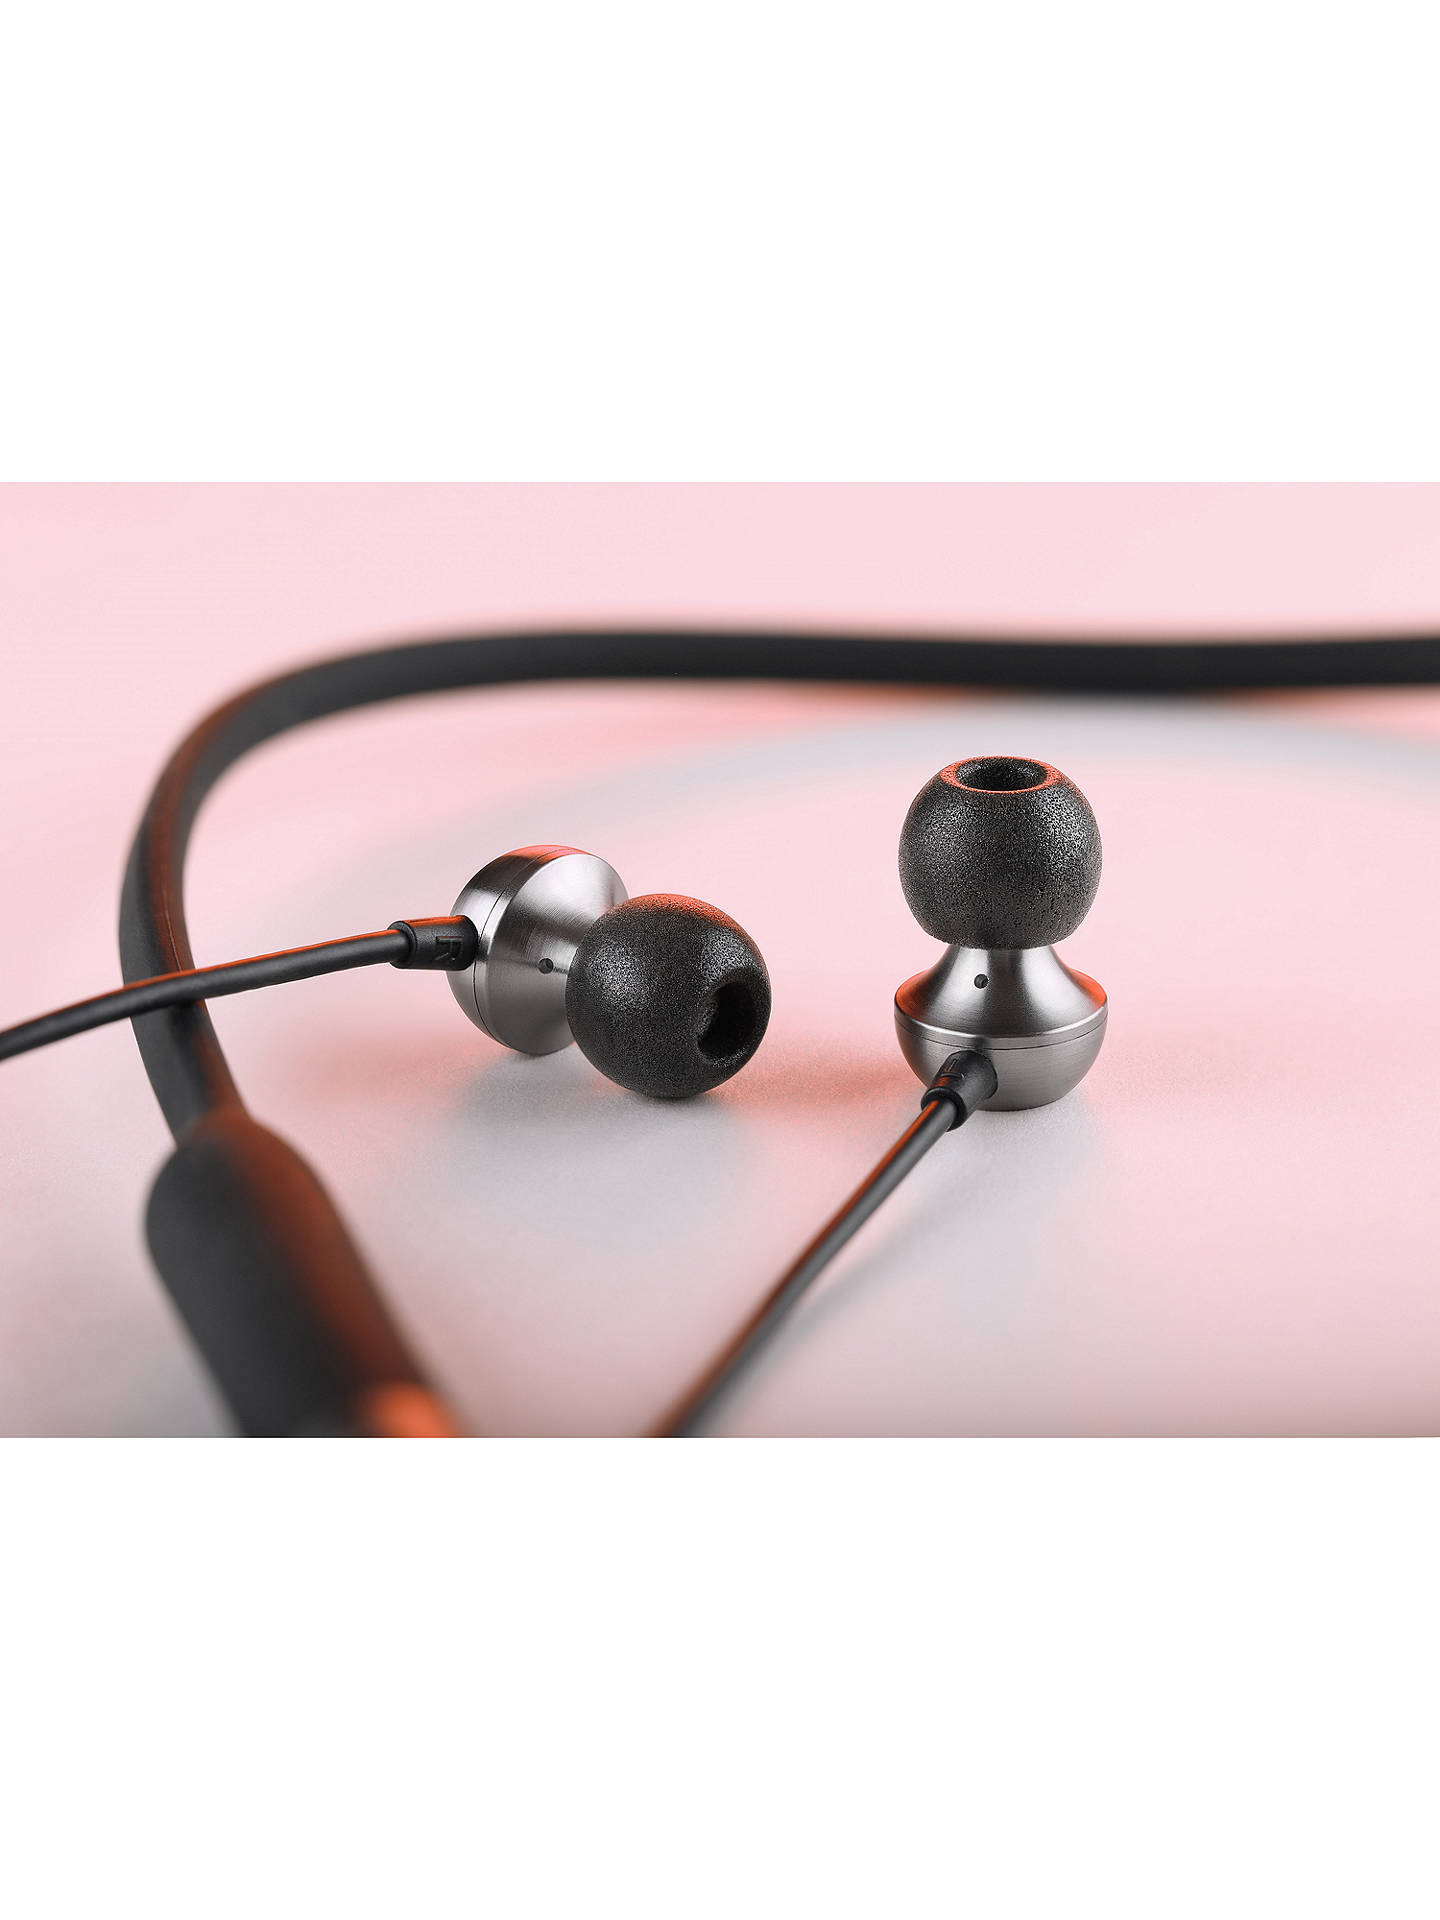 Buy RHA MA650 Wireless Bluetooth NFC In-Ear Headphones with High Resolution Audio & Mic/Remote, Black Online at johnlewis.com